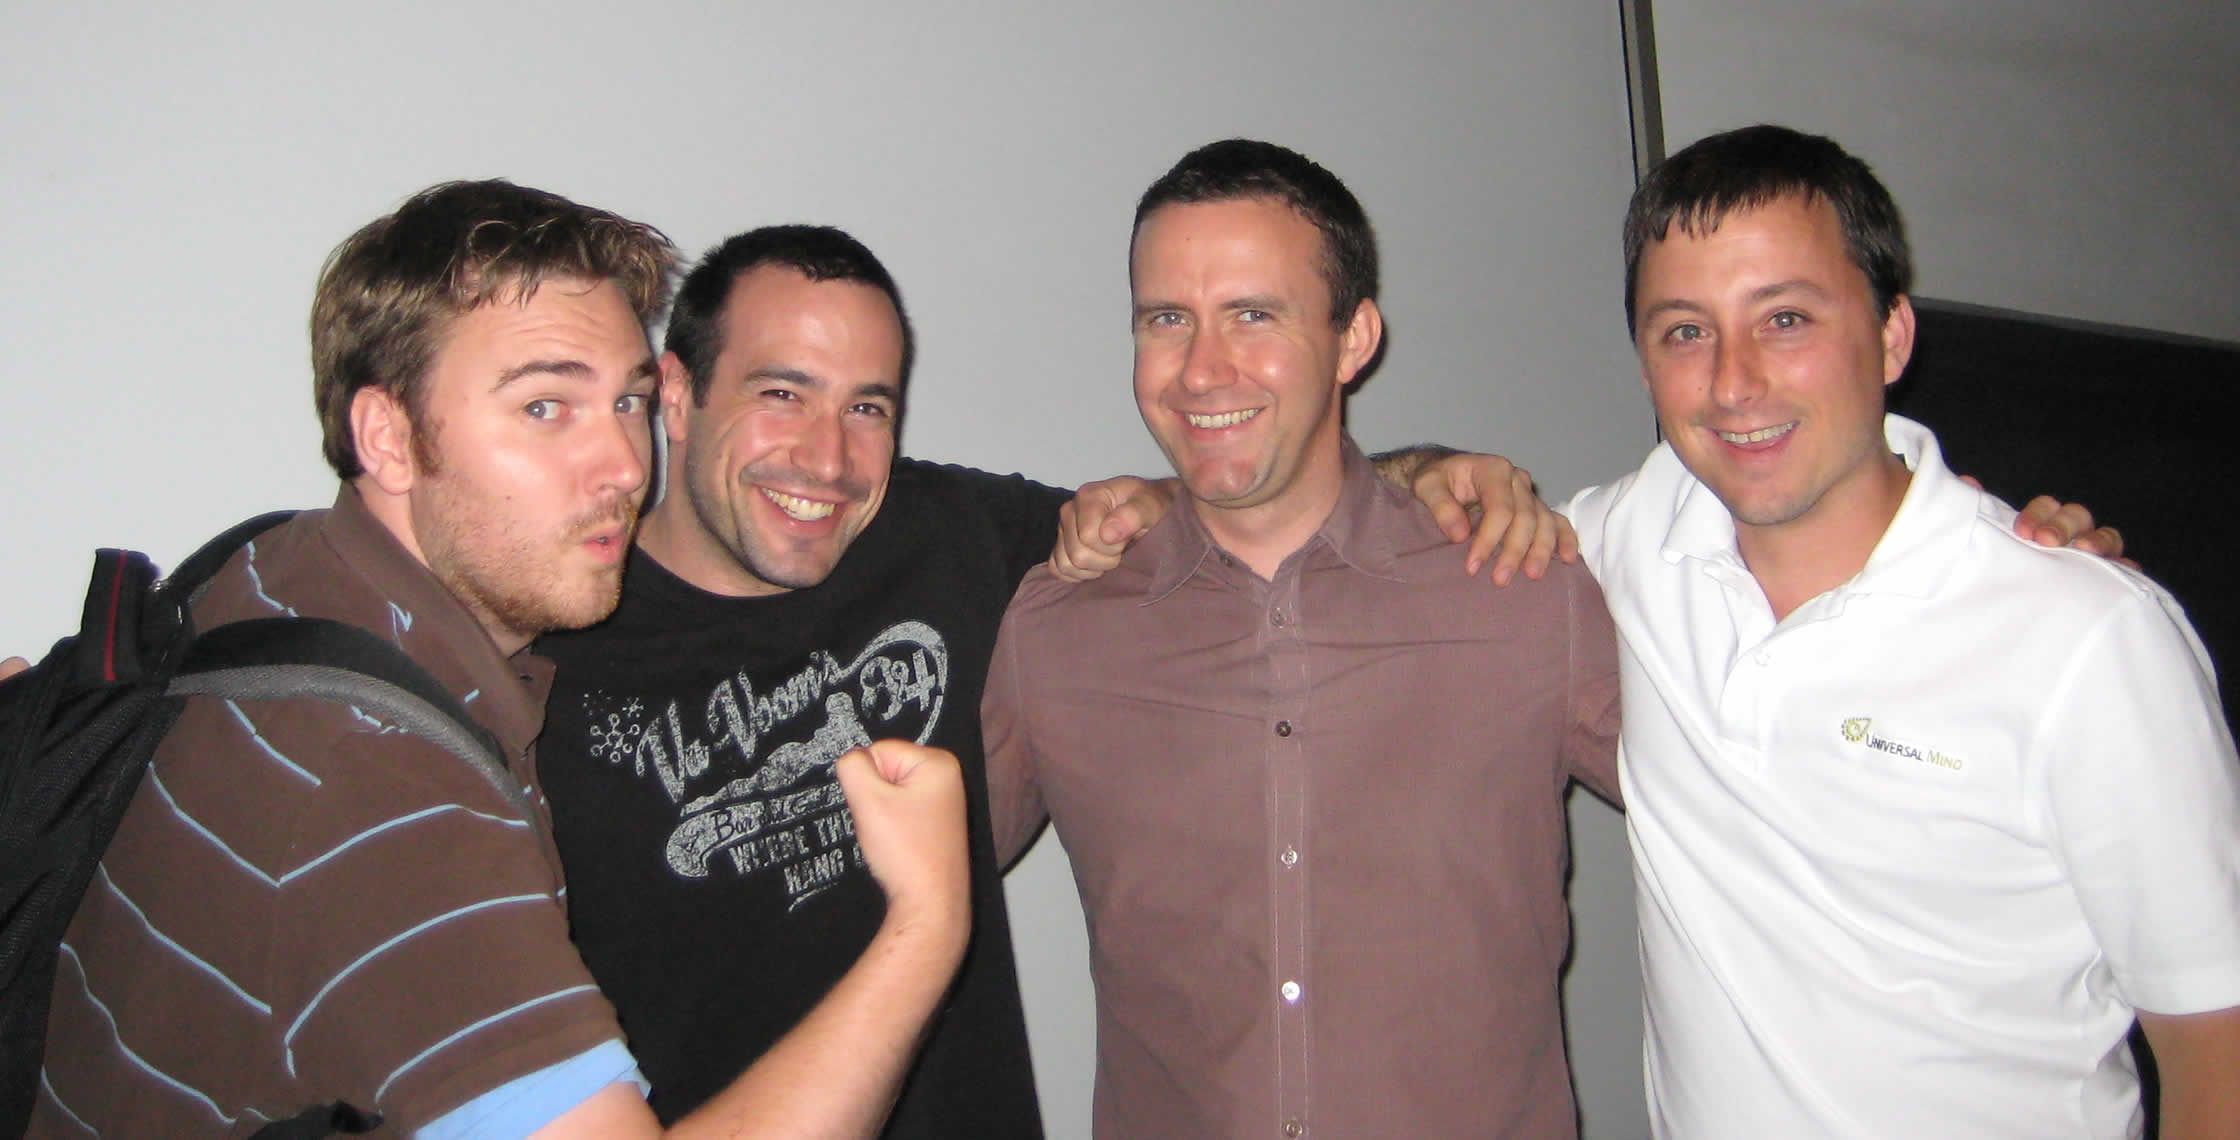 Ben Nadel at the New York ColdFusion User Group (Jul. 2008) with: Simon Free, Peter Bell, and Dan Wilson